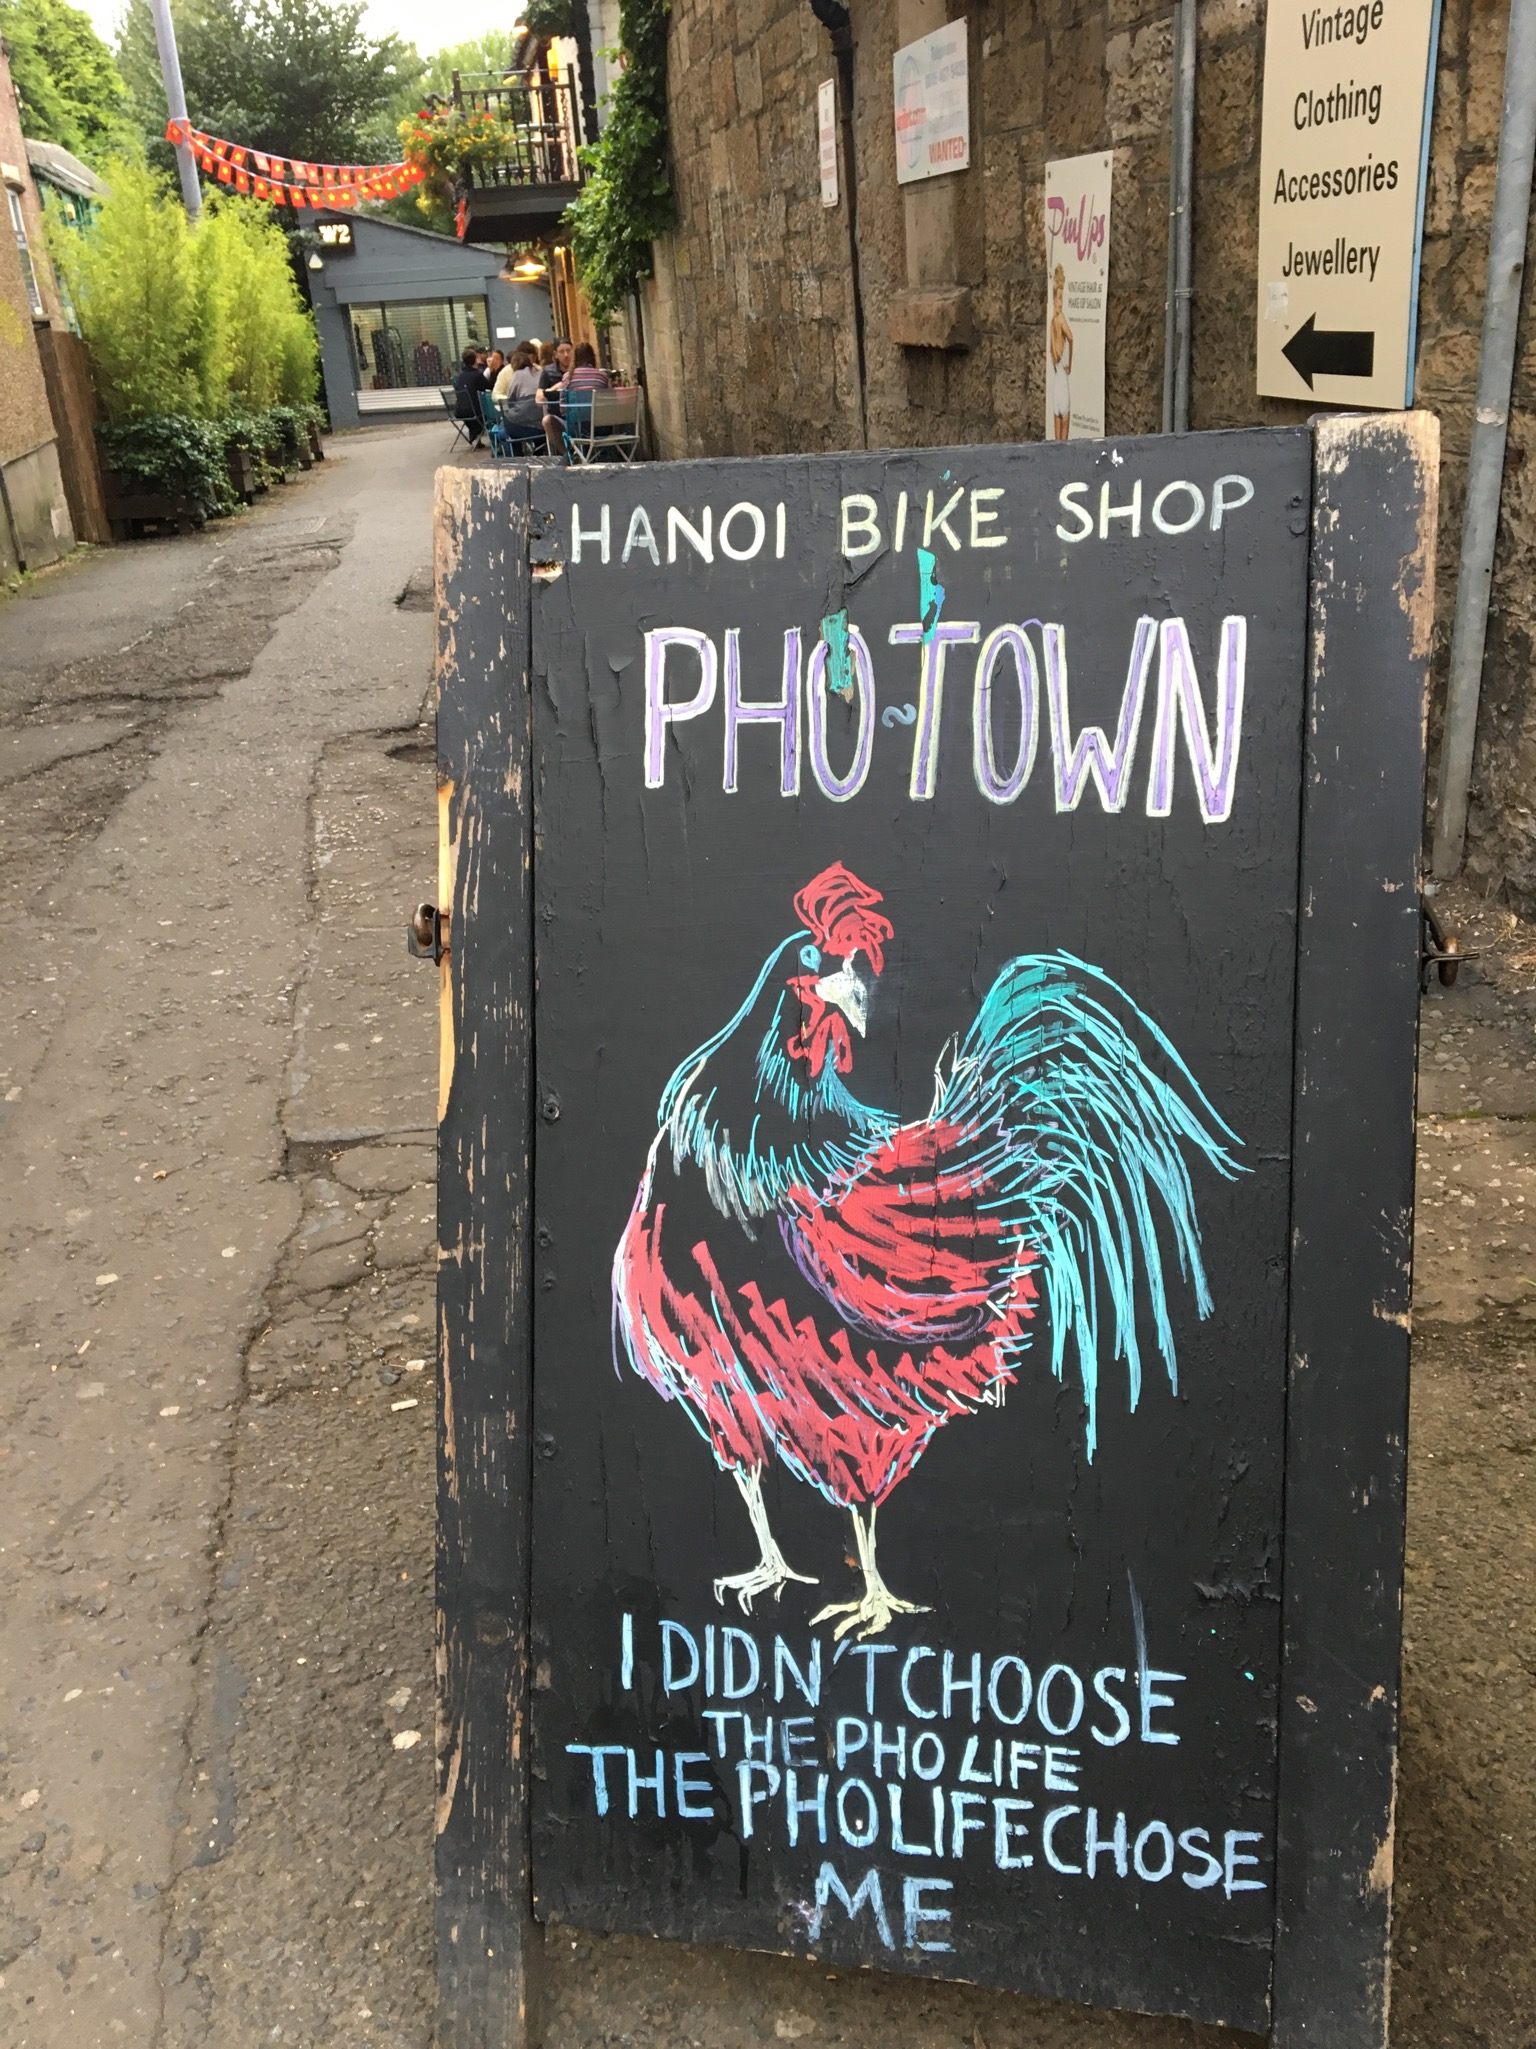 Hanoi Bike Shop